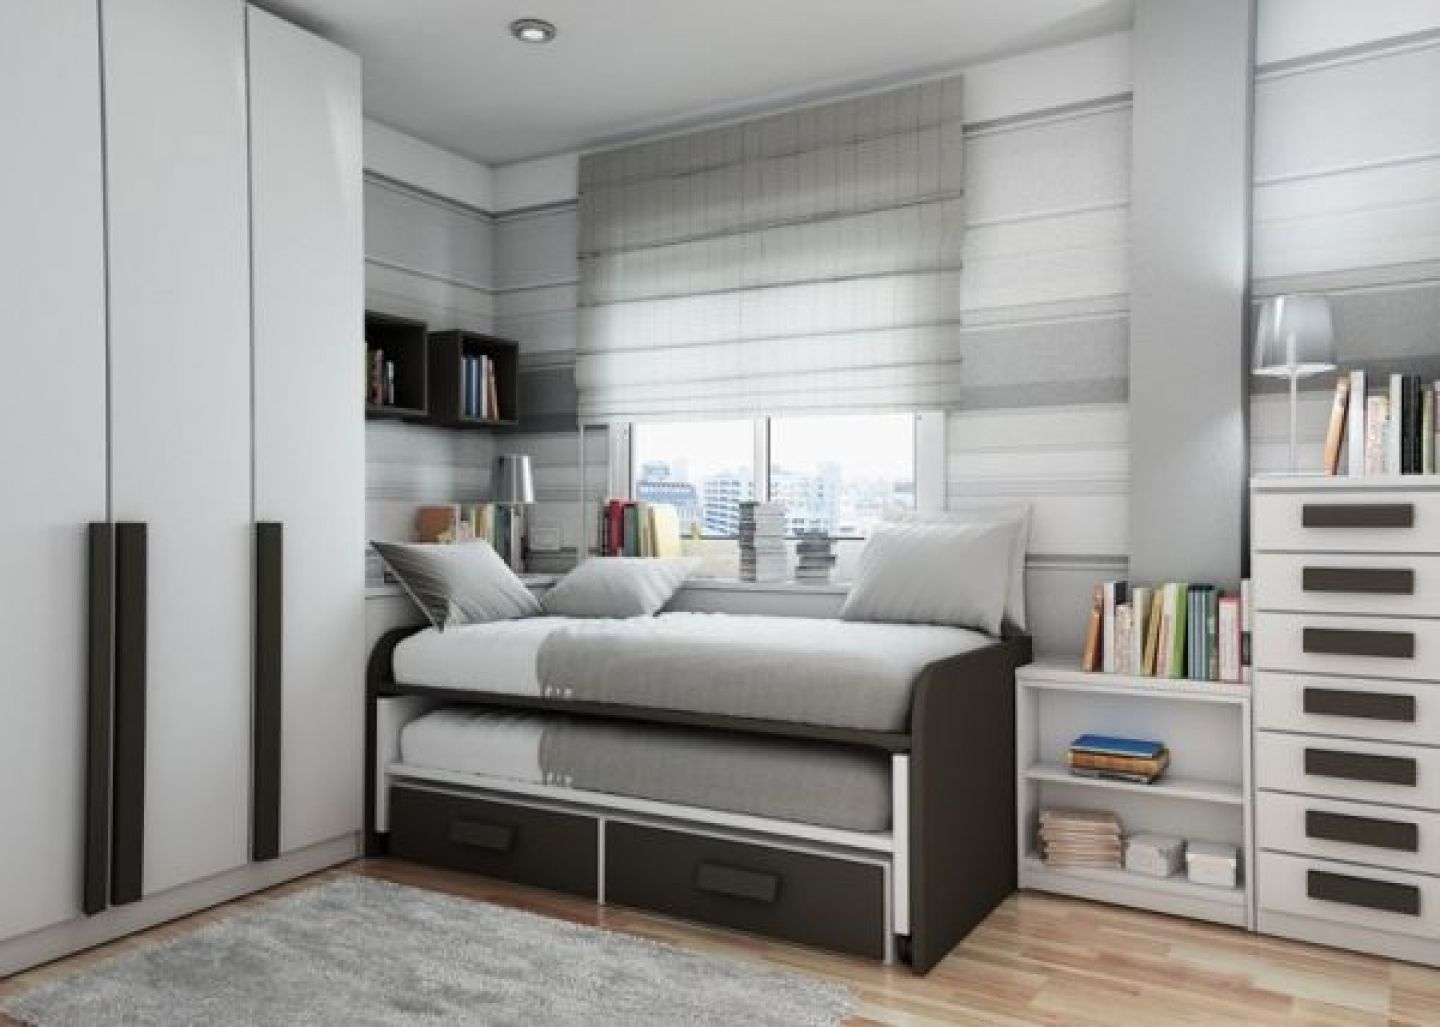 Bedrooms designs for teenagers - Teen Bedroom Cool Gray Shade Color Nuance Bedroom Designs For Teenagers Bedroom Designs